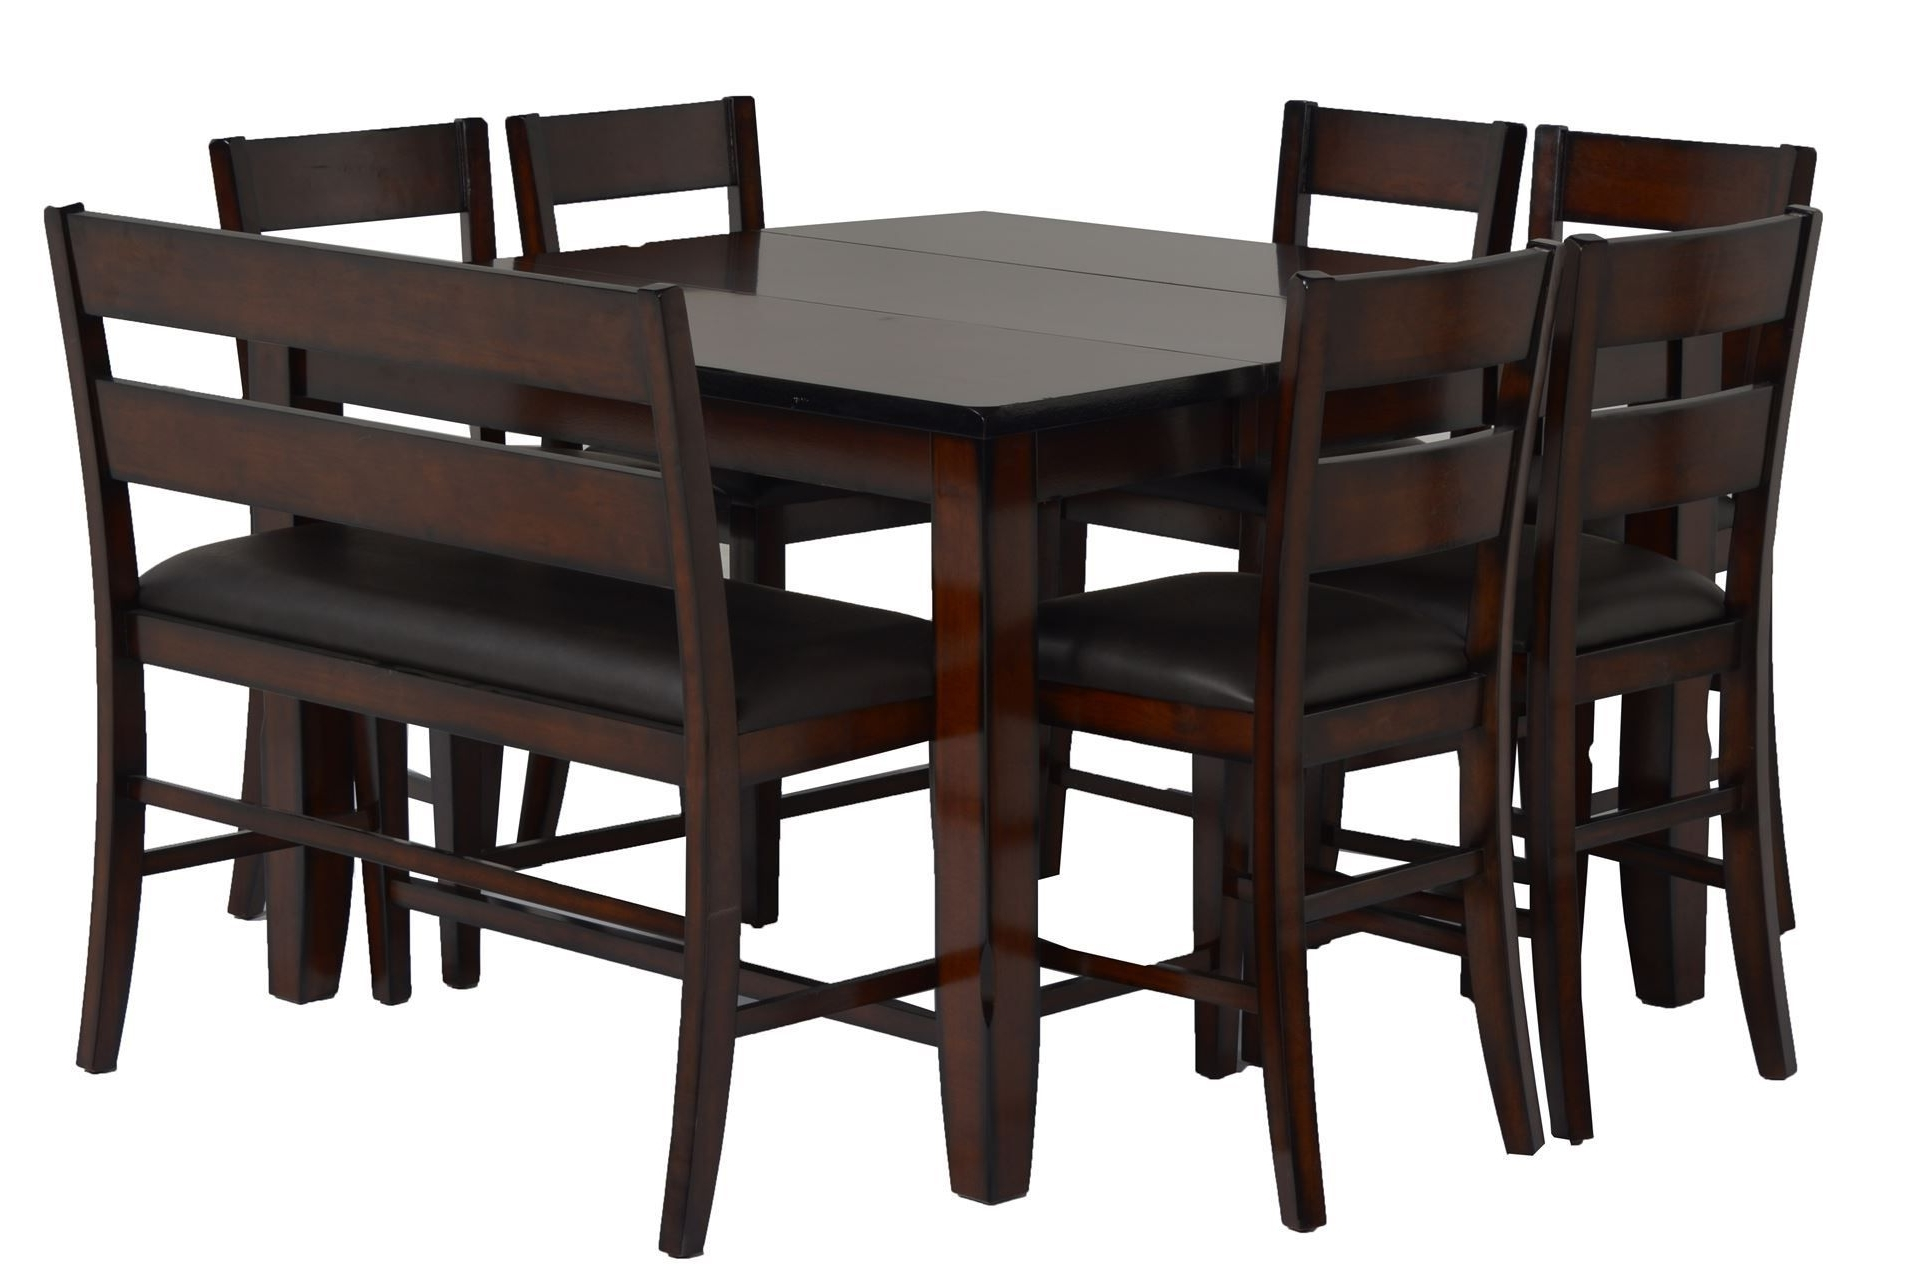 Rocco 9 Piece Extension Counter Sets for Favorite 8 Piece Extension Counter Set, Rocco, Espresso, Kitchen & Dining